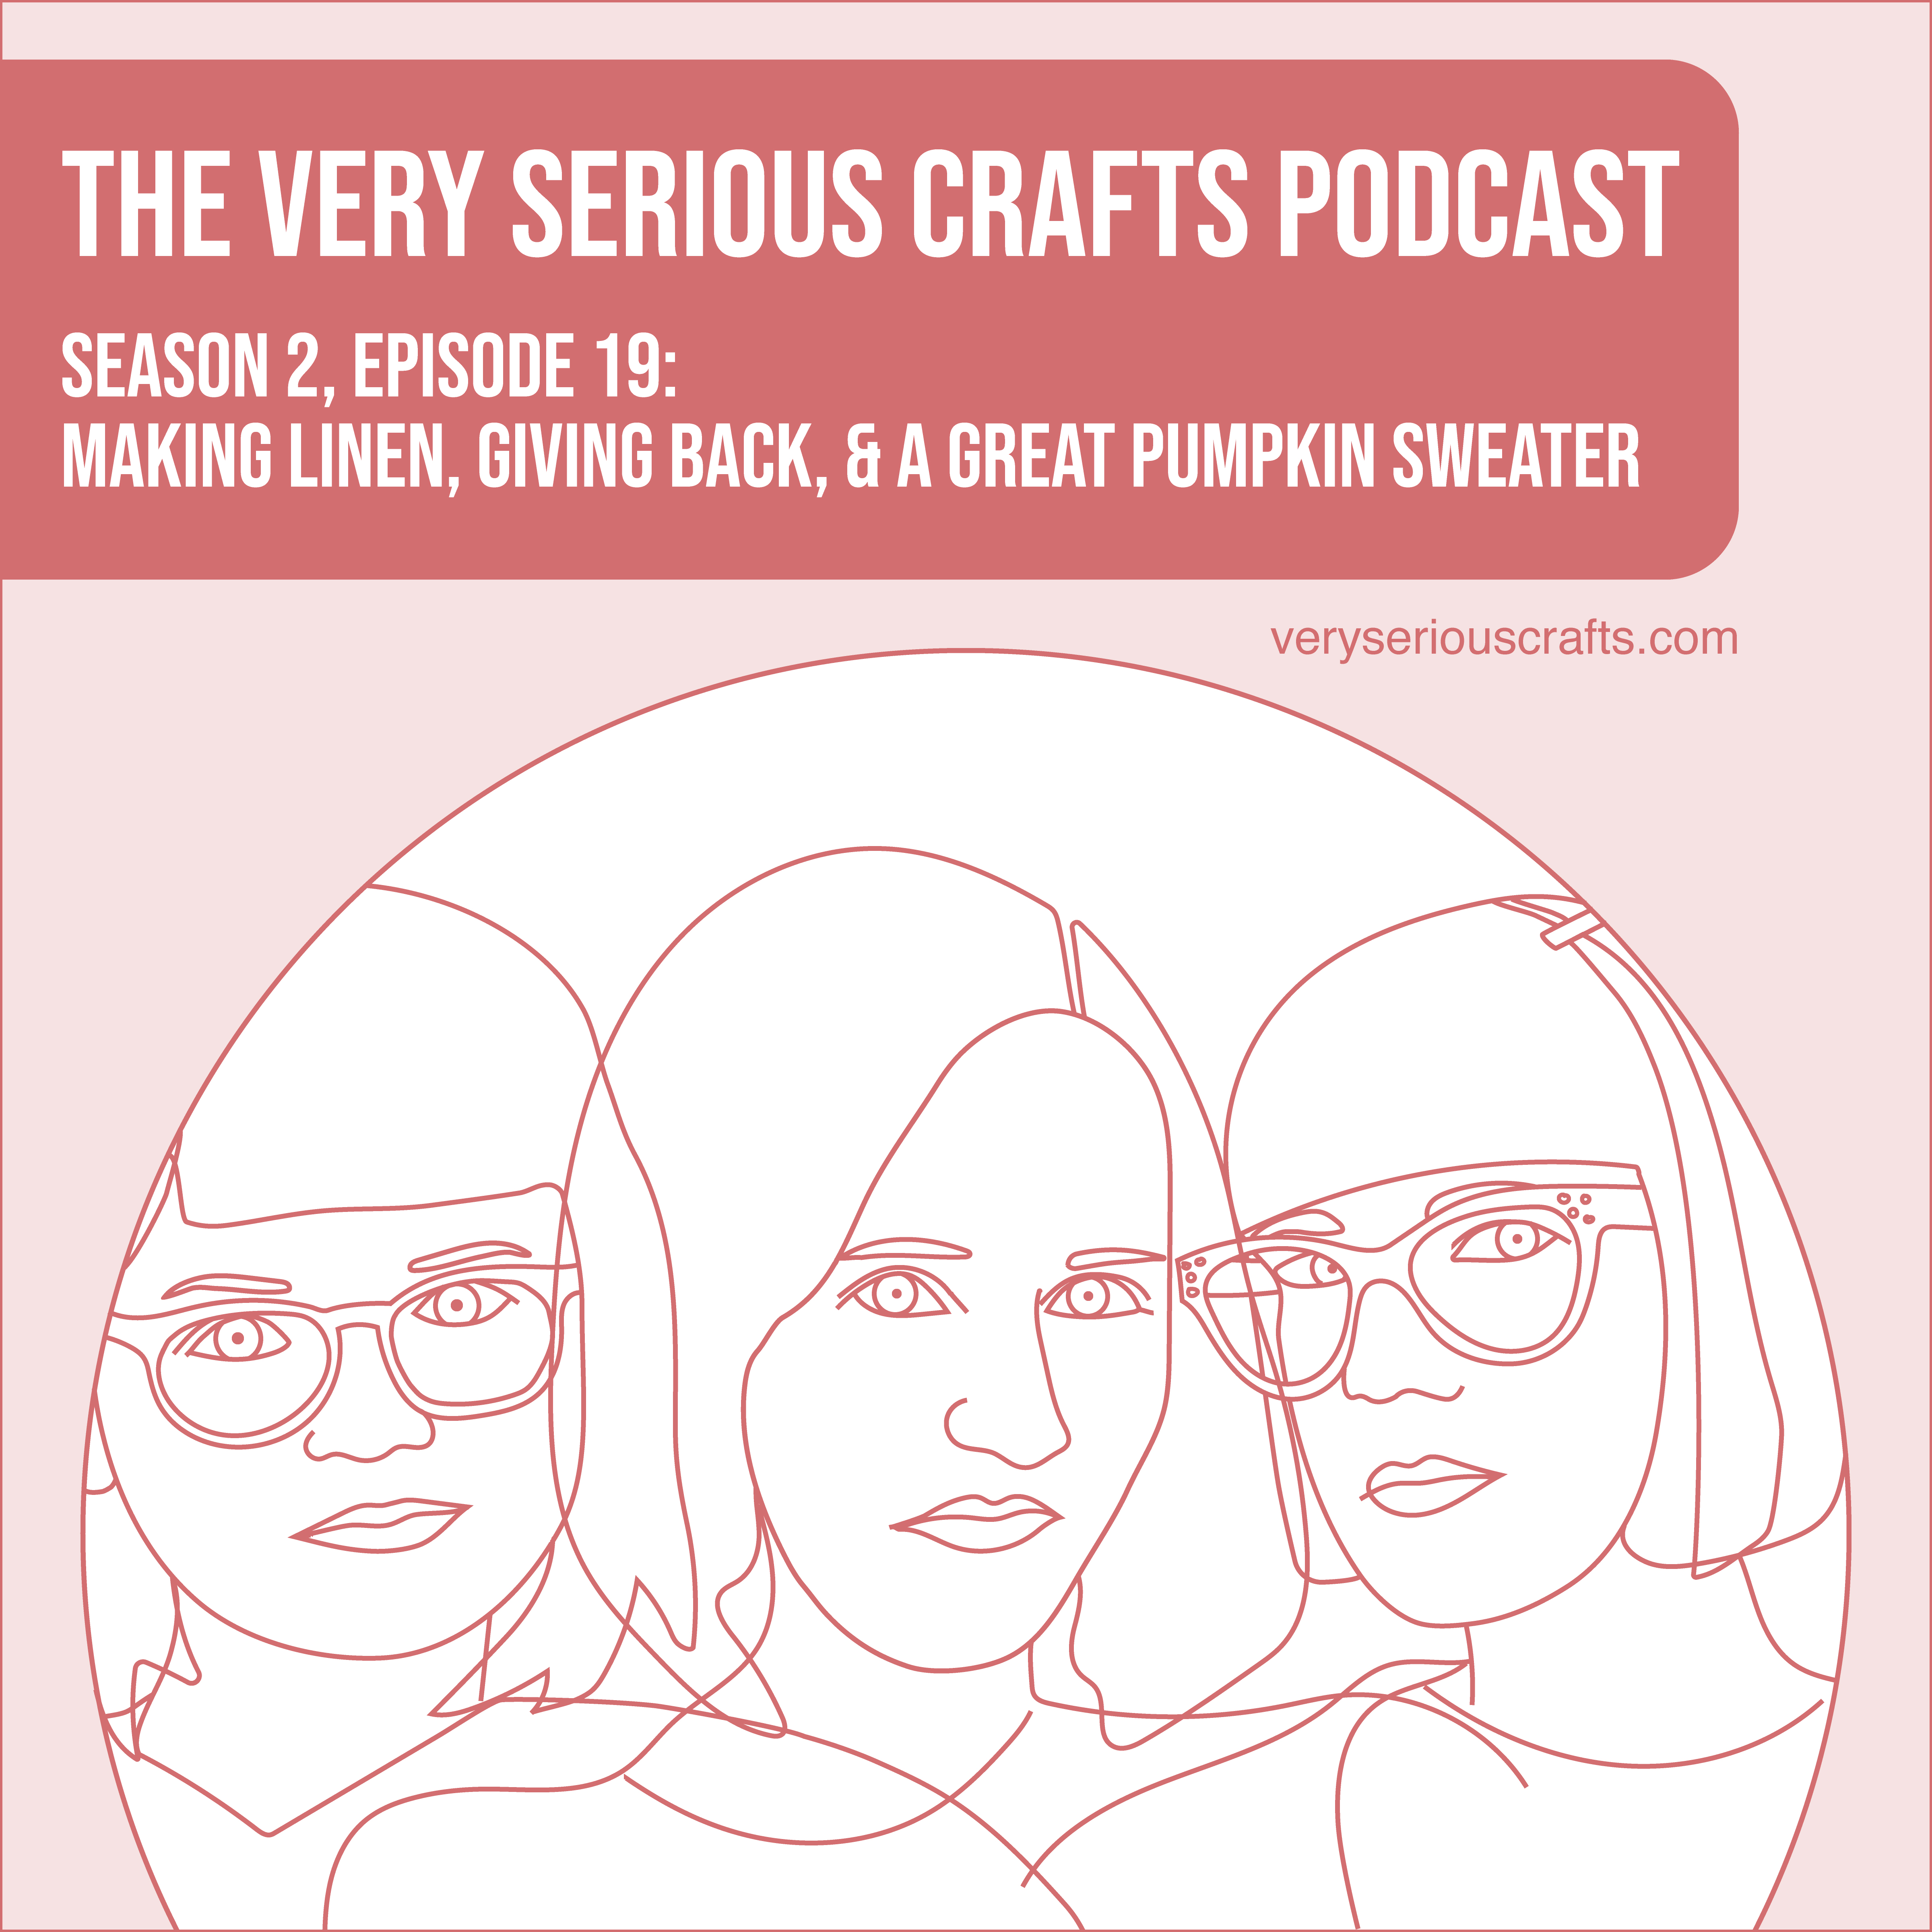 The Very Serious Crafts Podcast, Season 2: Episode 19 – Making Linen, Giving Back, and a Great Pumpkin Sweater